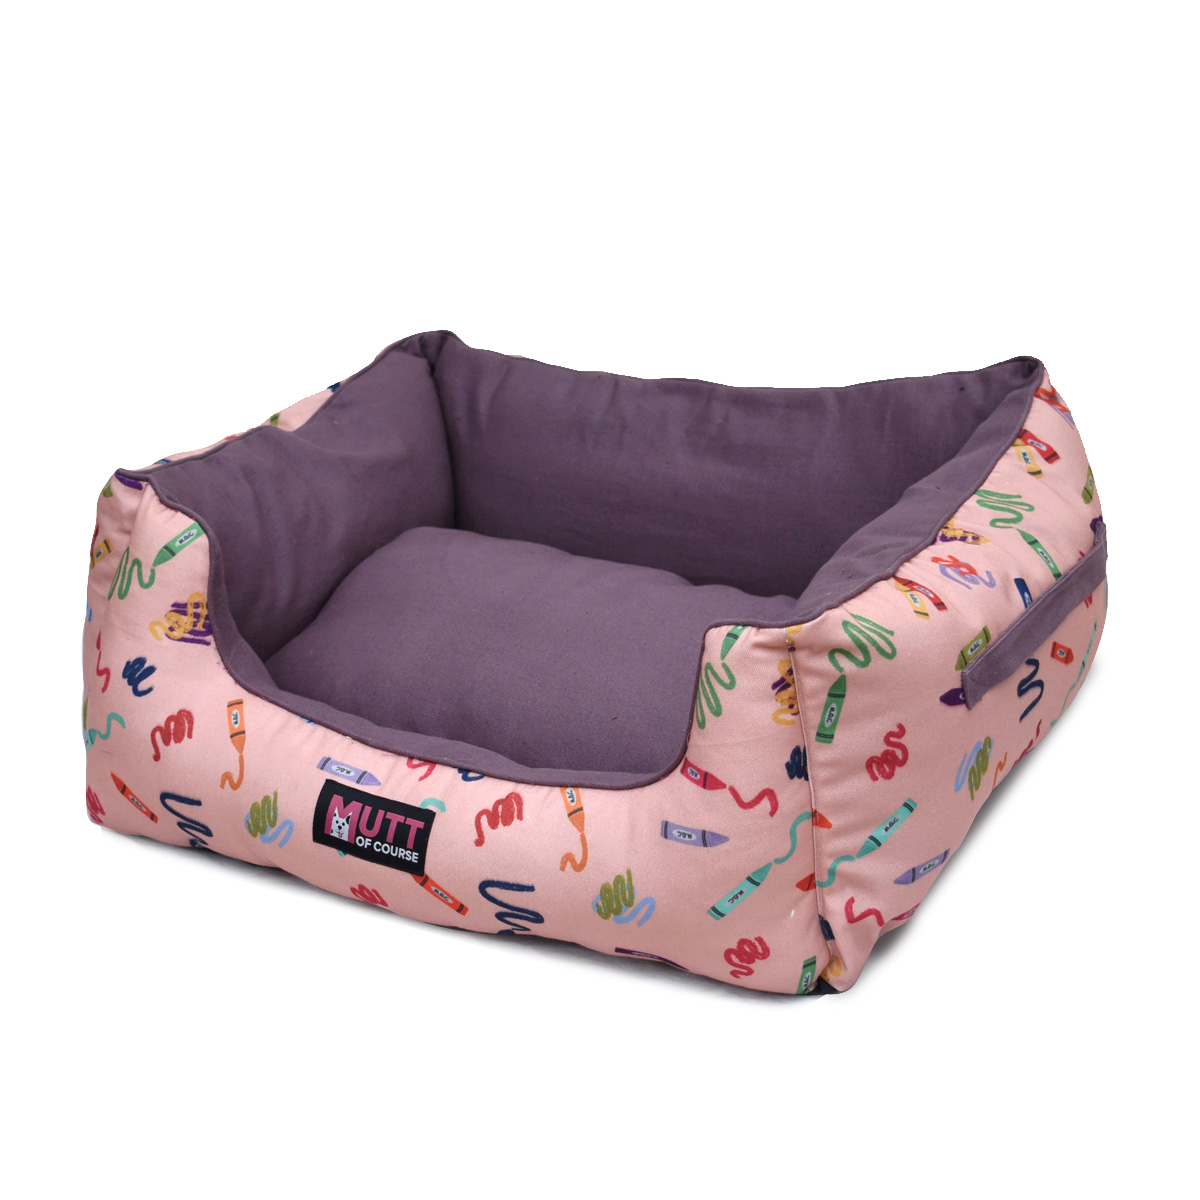 Mutt Of Course Lounger Bed For Dogs - Woofy Colours - Medium